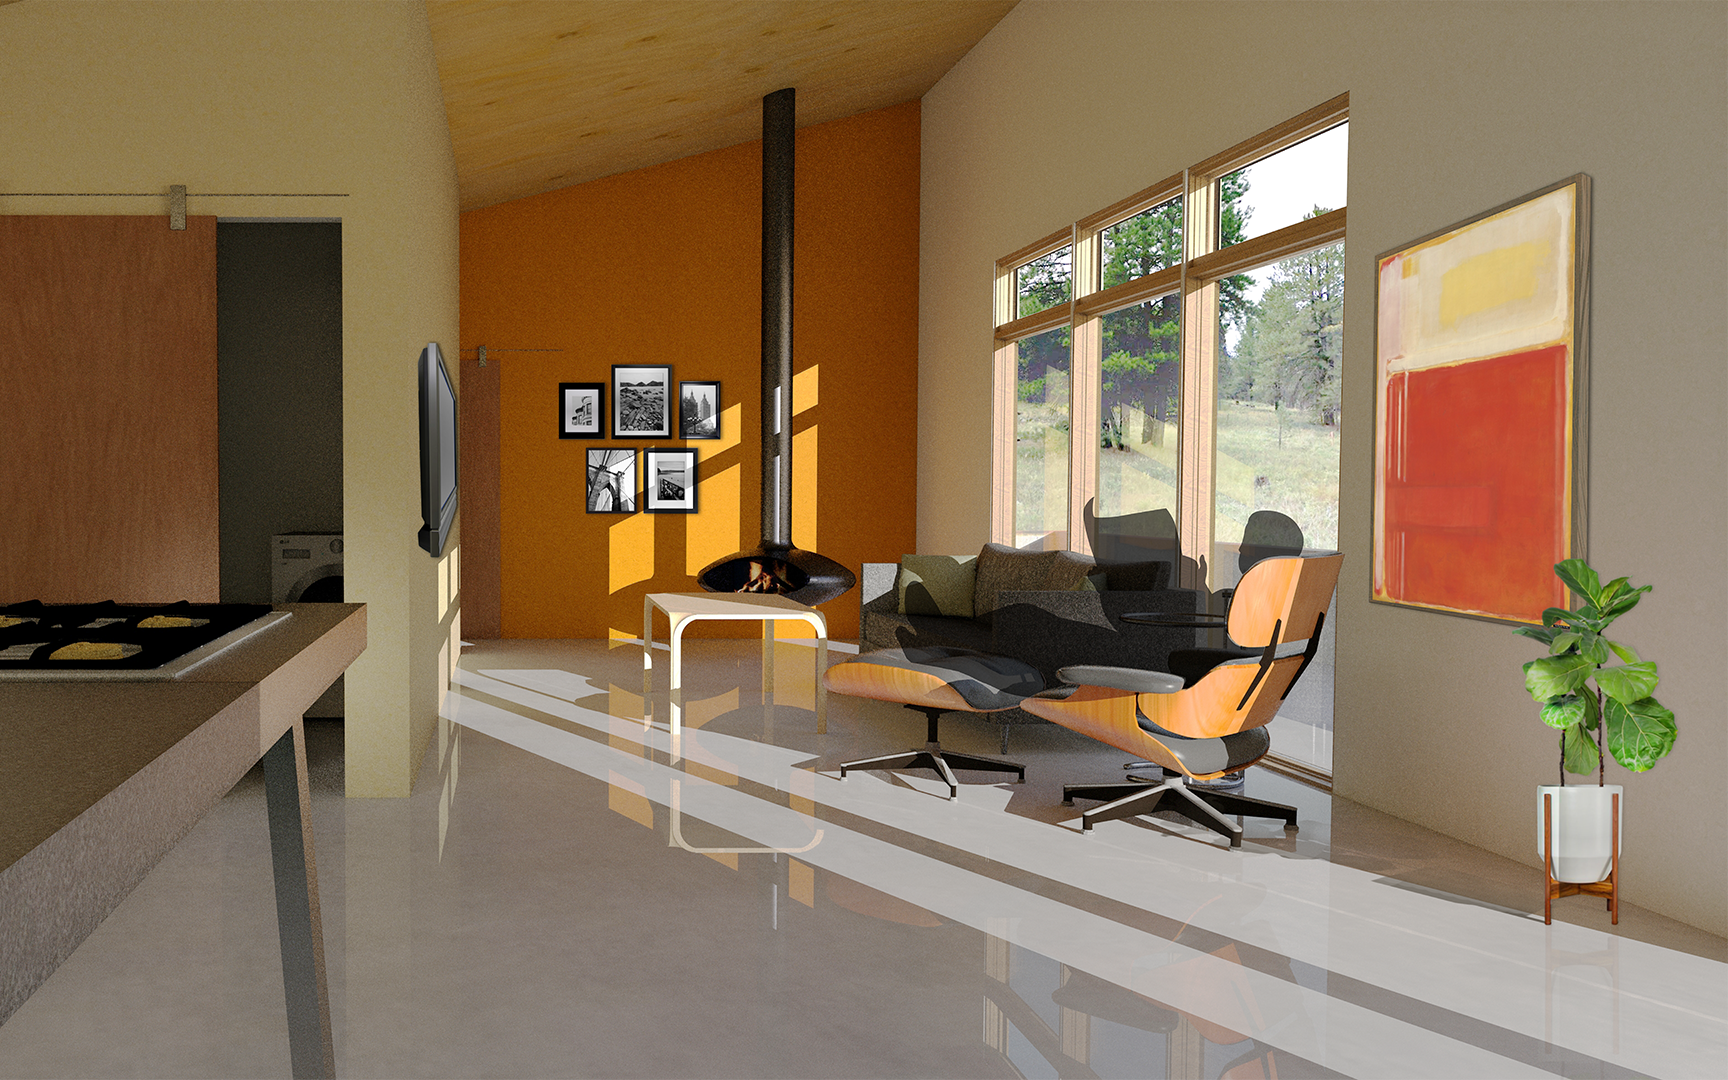 1603_Building_Interior_Living Room_with people_Final_Cropped - for web.png